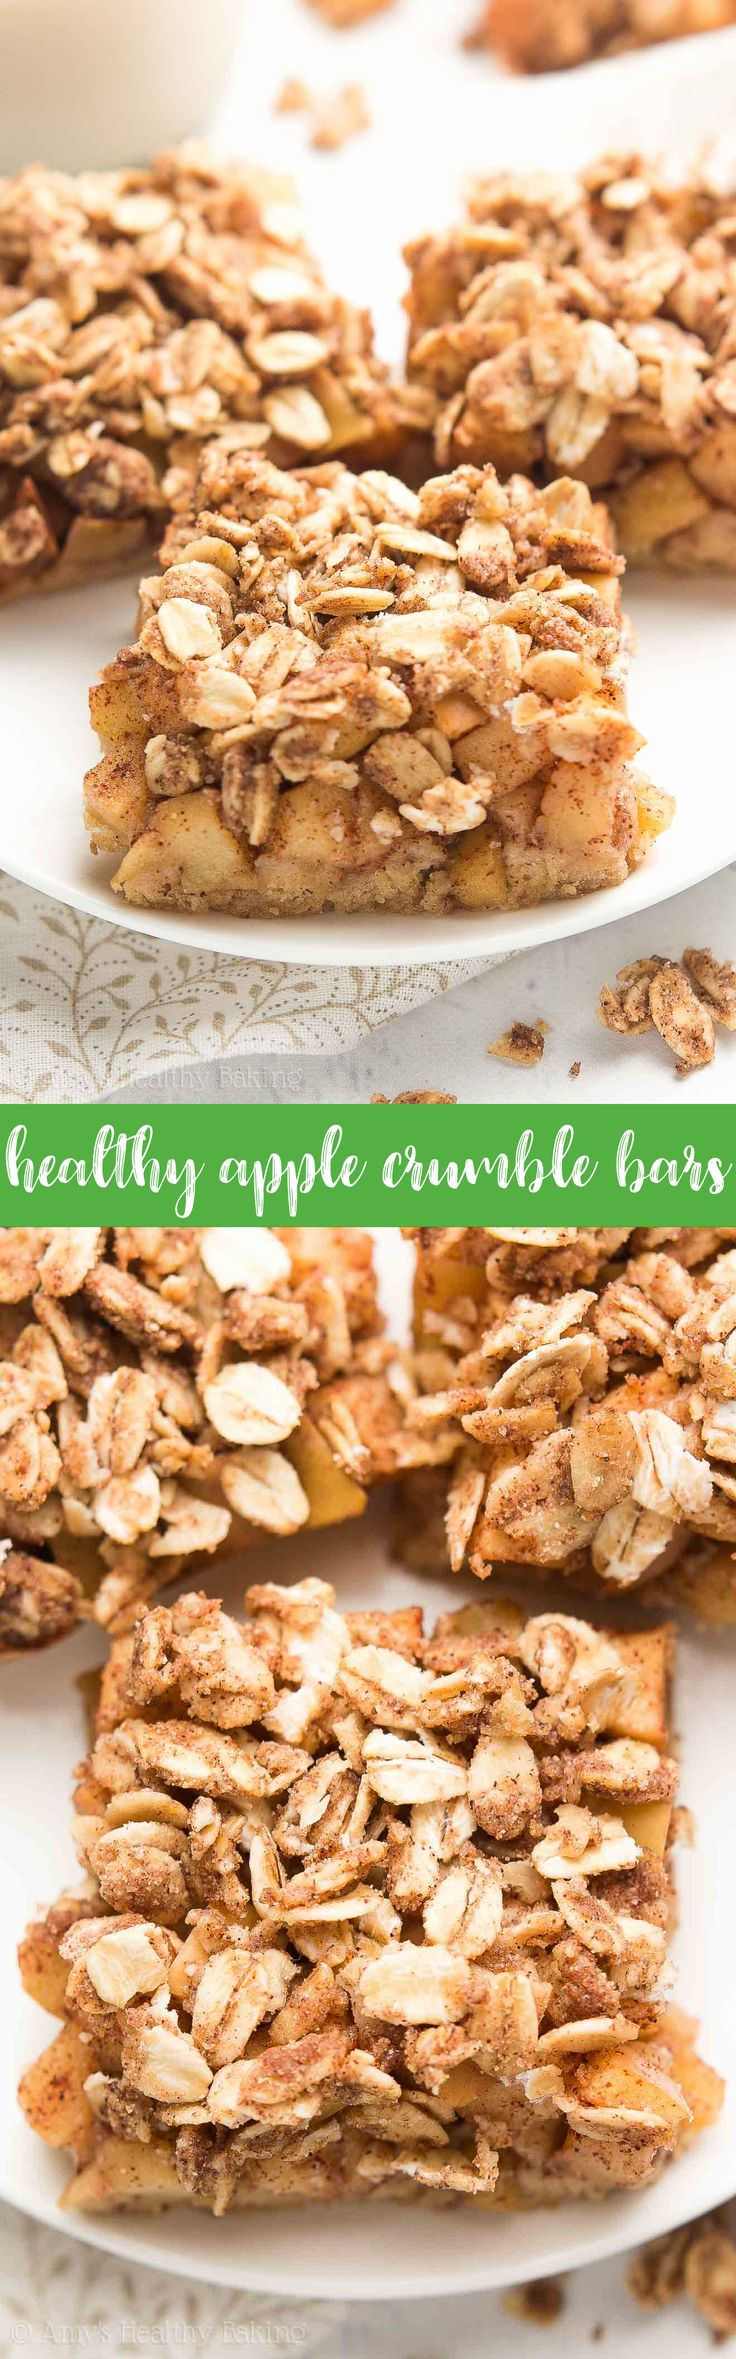 {HEALTHY!} Small Batch Apple Crumble Bars -- 67 calories! SO GOOD & easy to make! Sugar cookie crust + spiced apple filling + cozy oat streusel = pure BLISS! #recipe